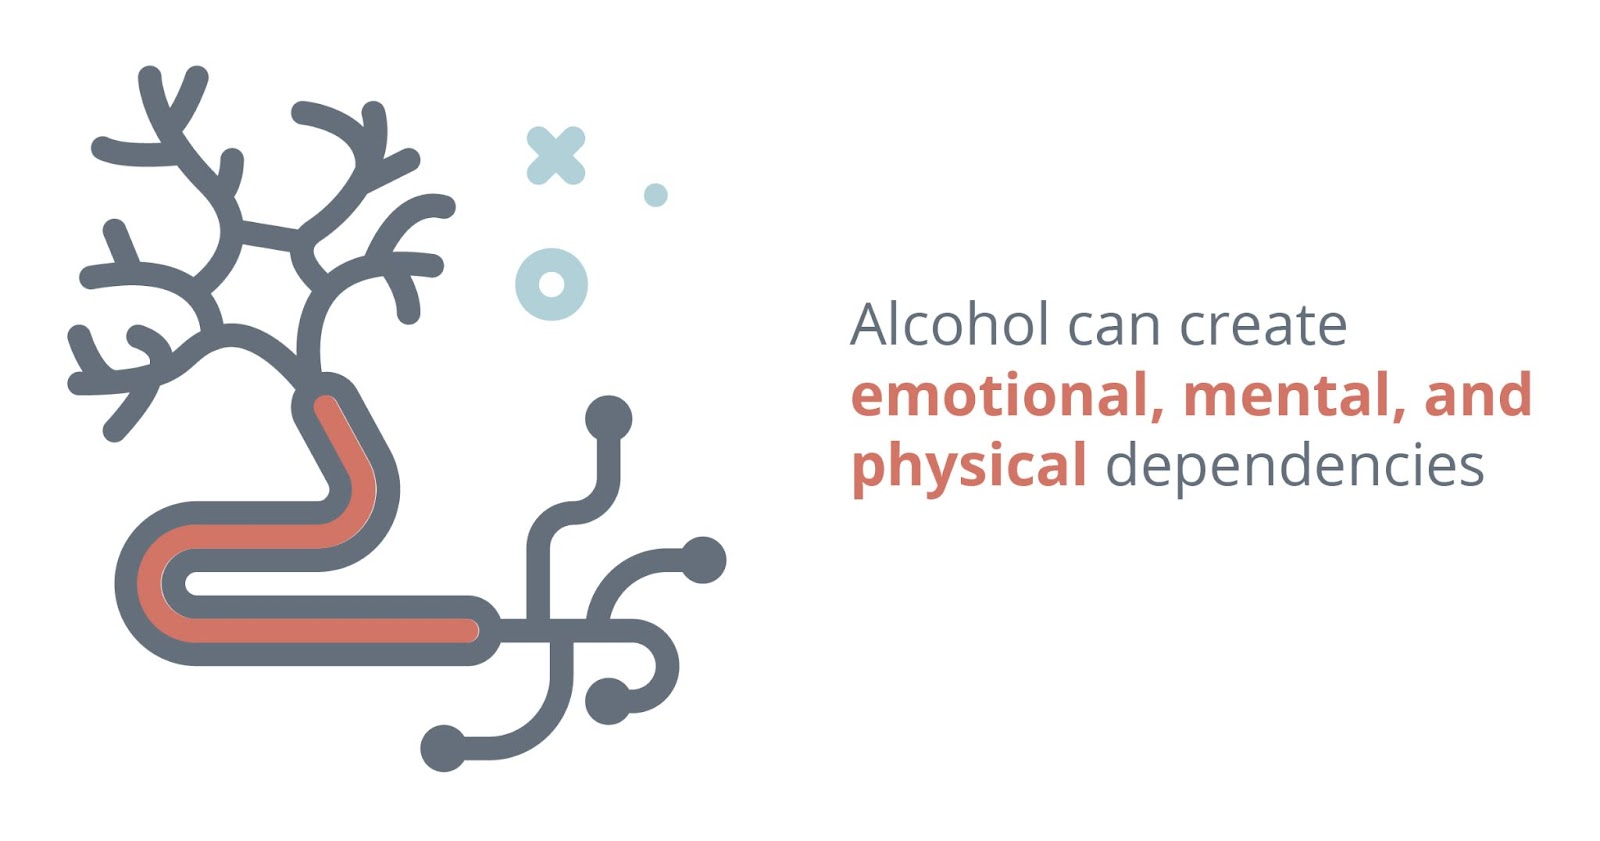 Alcohol can create emotional, mental, and physical dependencies.